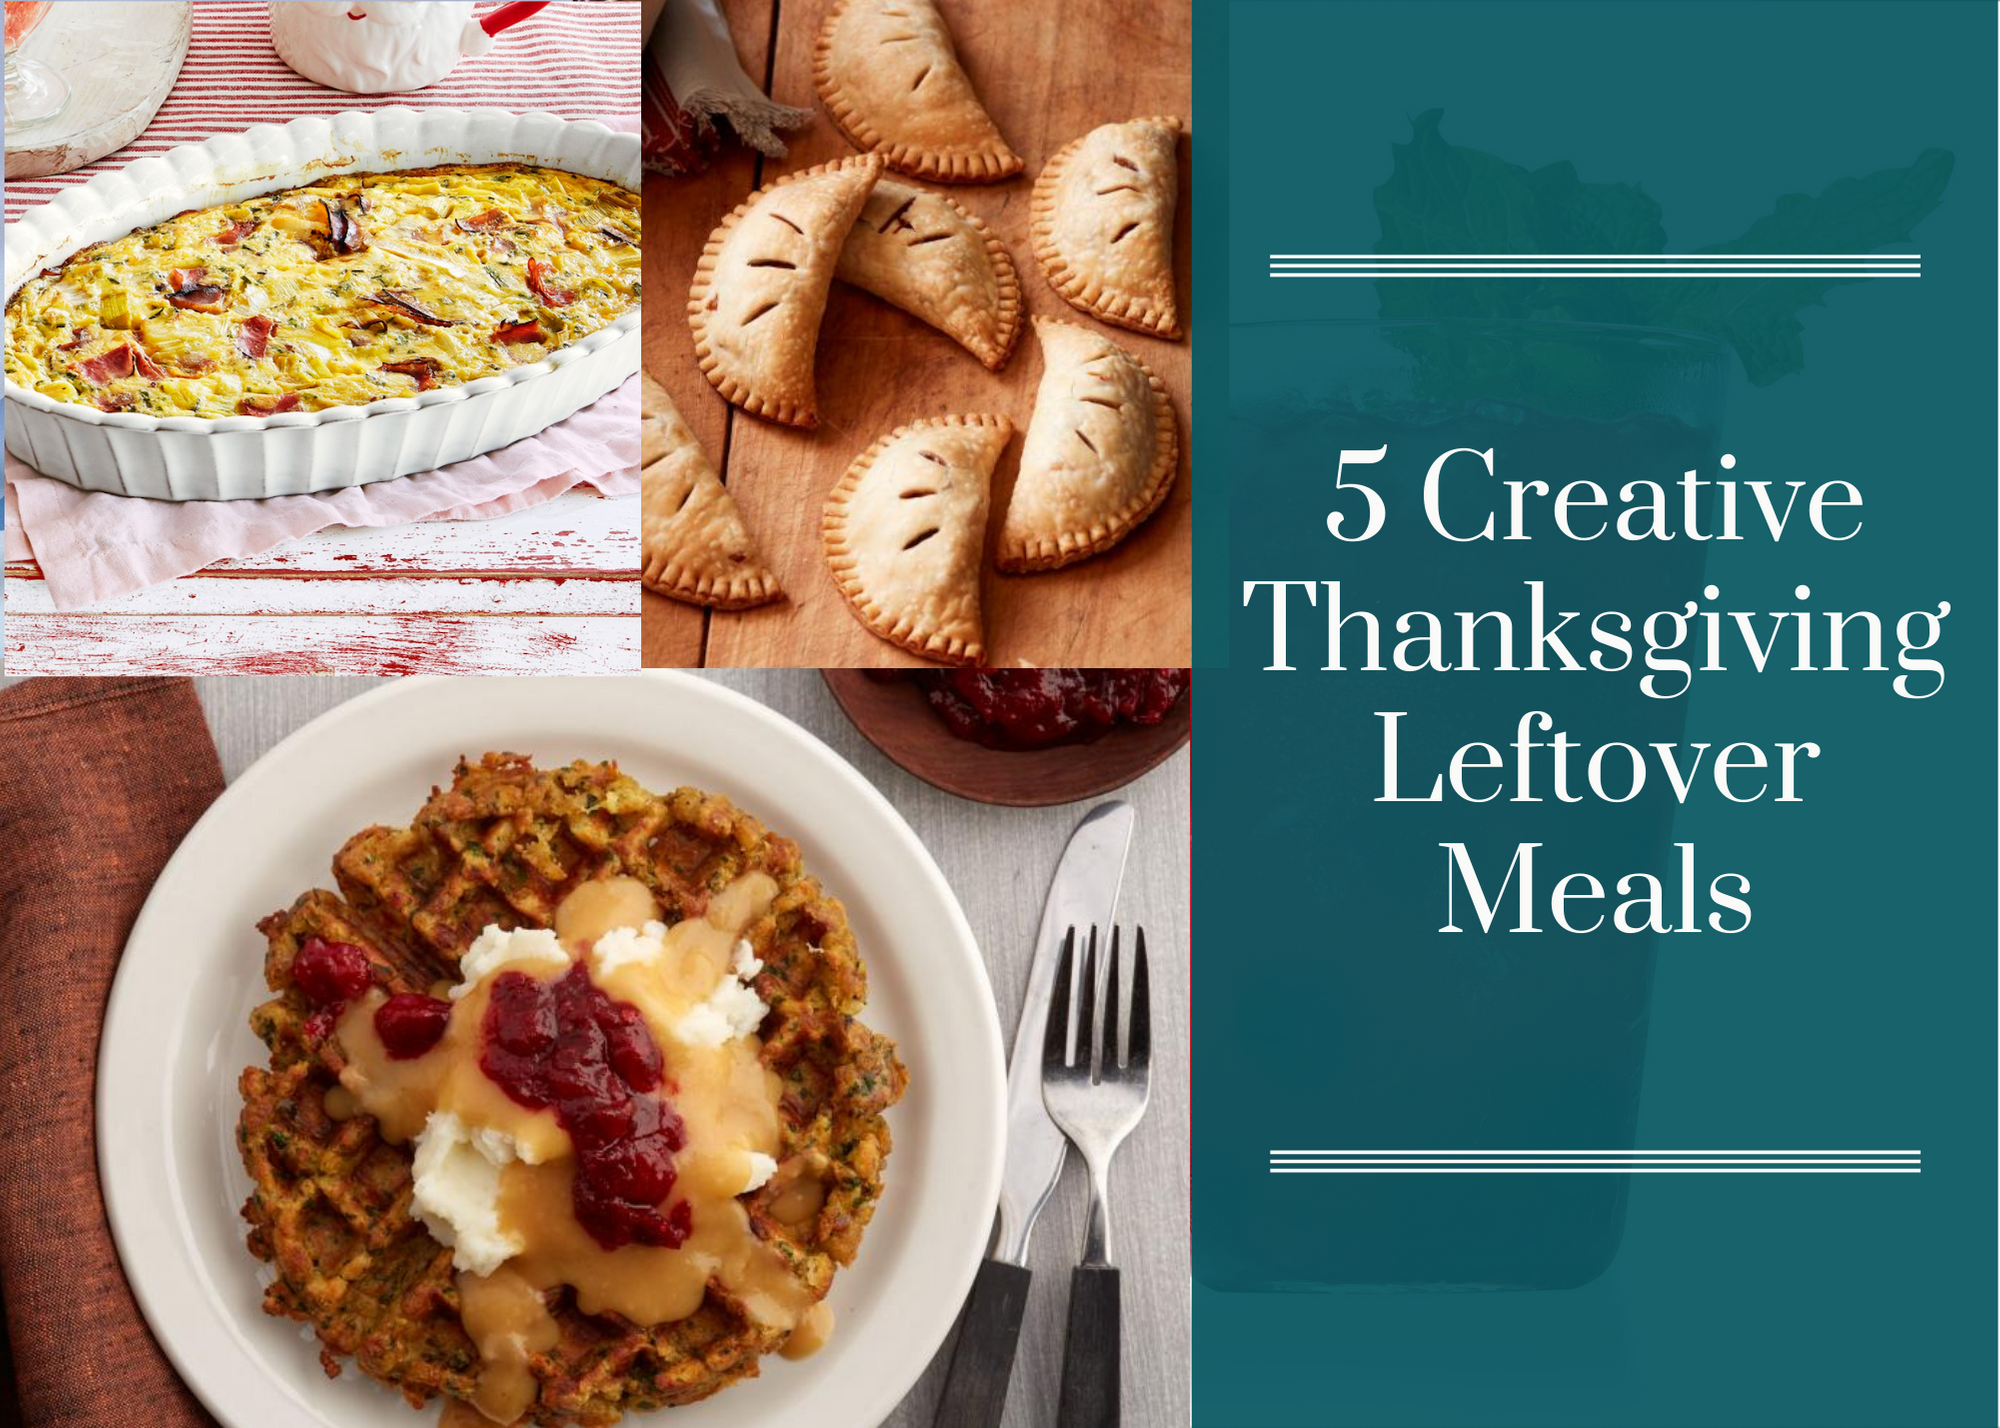 5 Creative Thanksgiving Leftover Meals